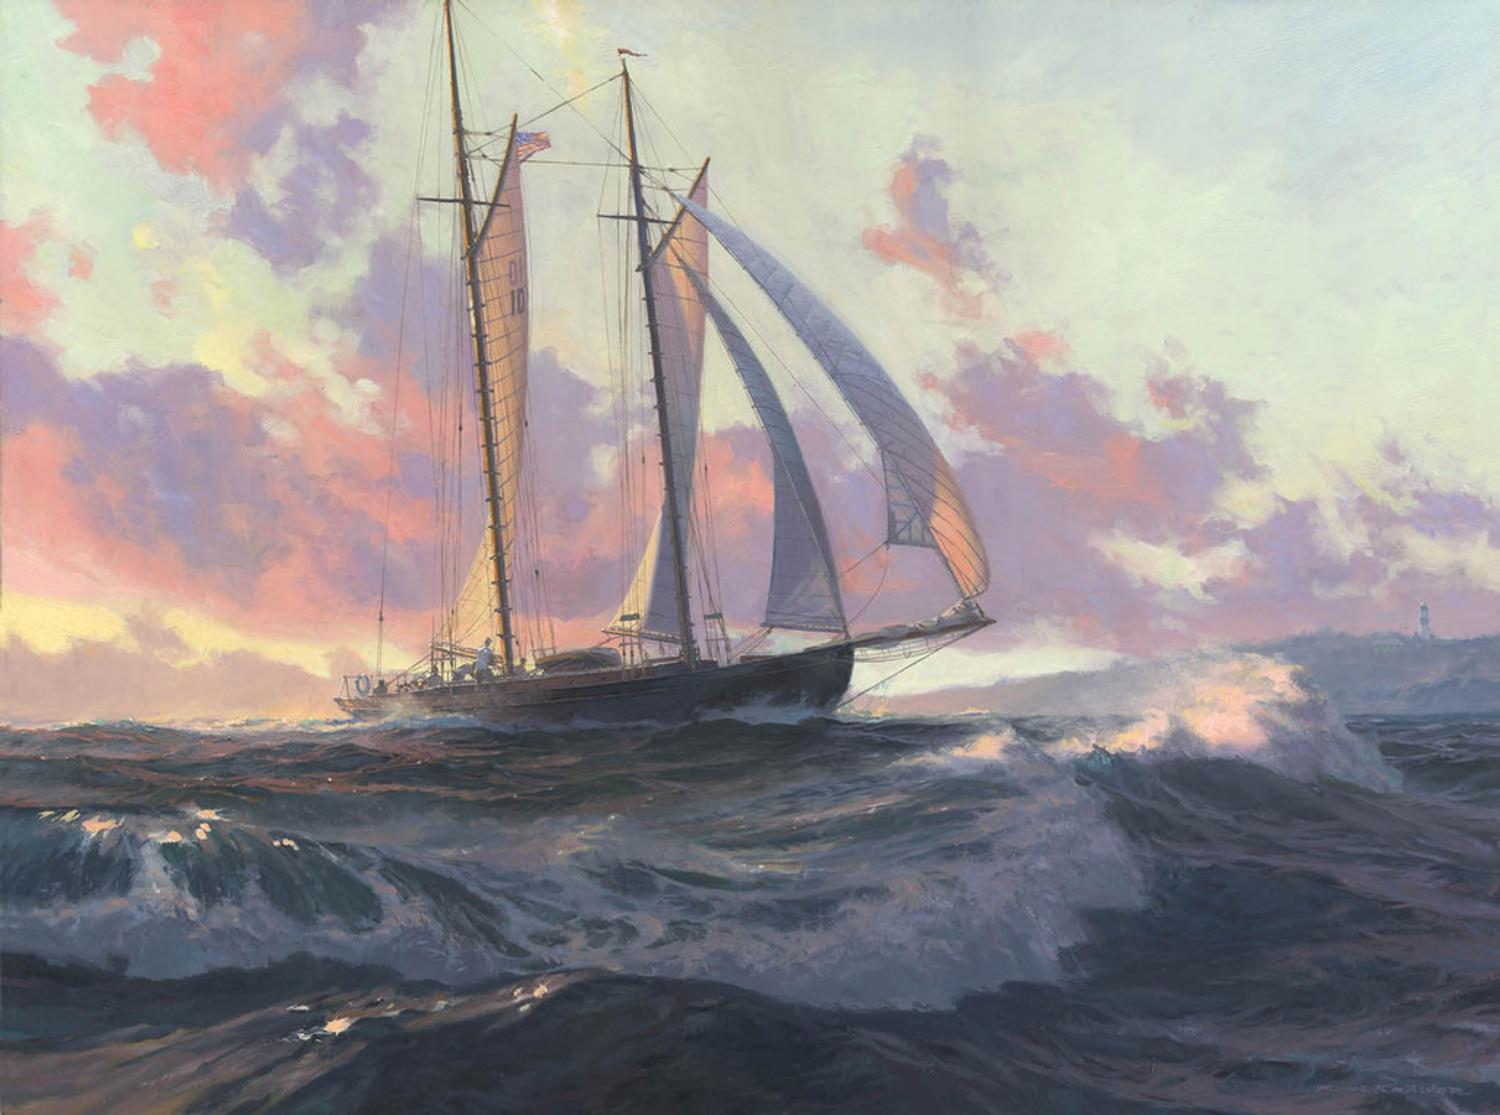 The Best In Contemporary American Marine Art Heads To